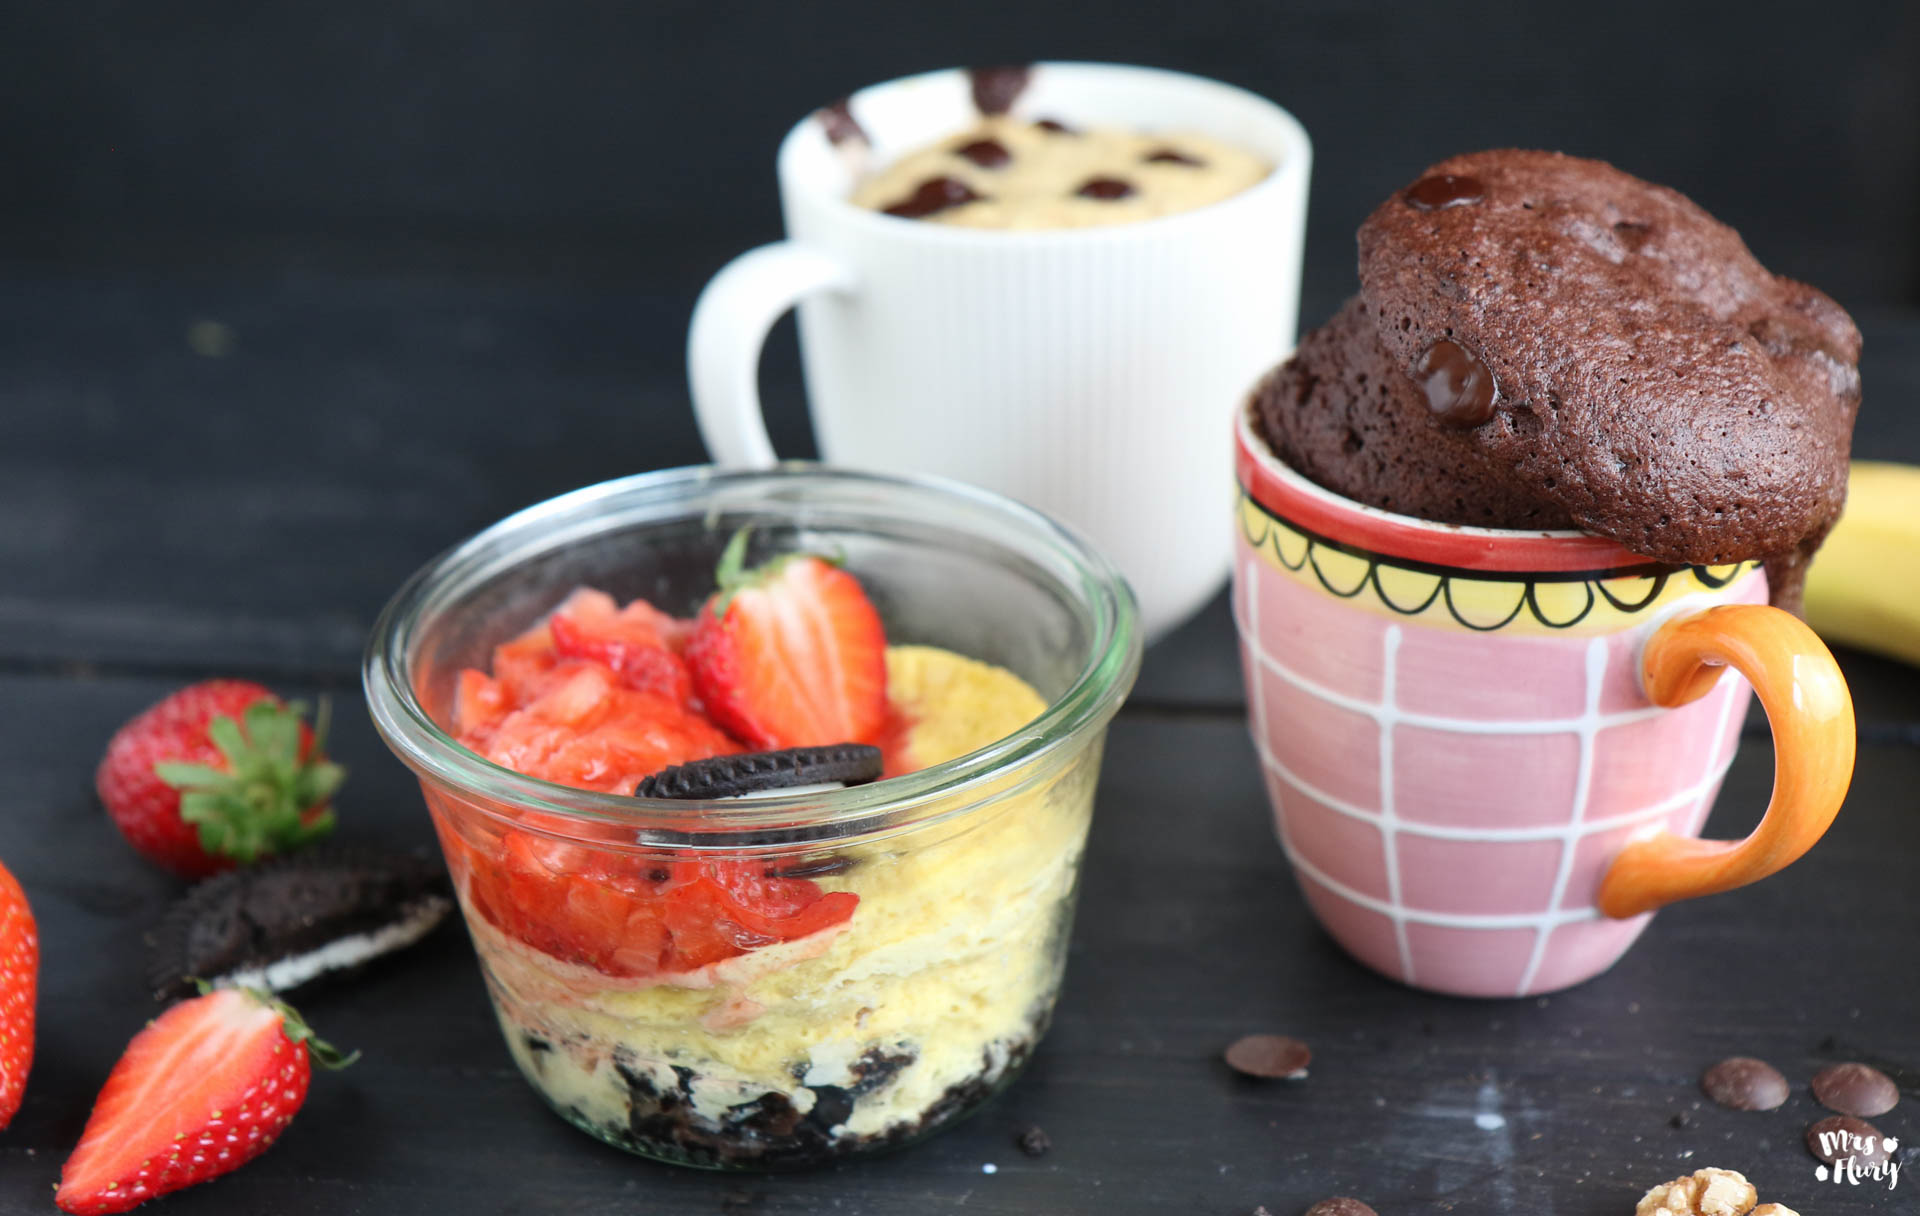 mug cakes drei gesunde tassenkuchen mrs flury recipes lovely easy with a healthy touch. Black Bedroom Furniture Sets. Home Design Ideas